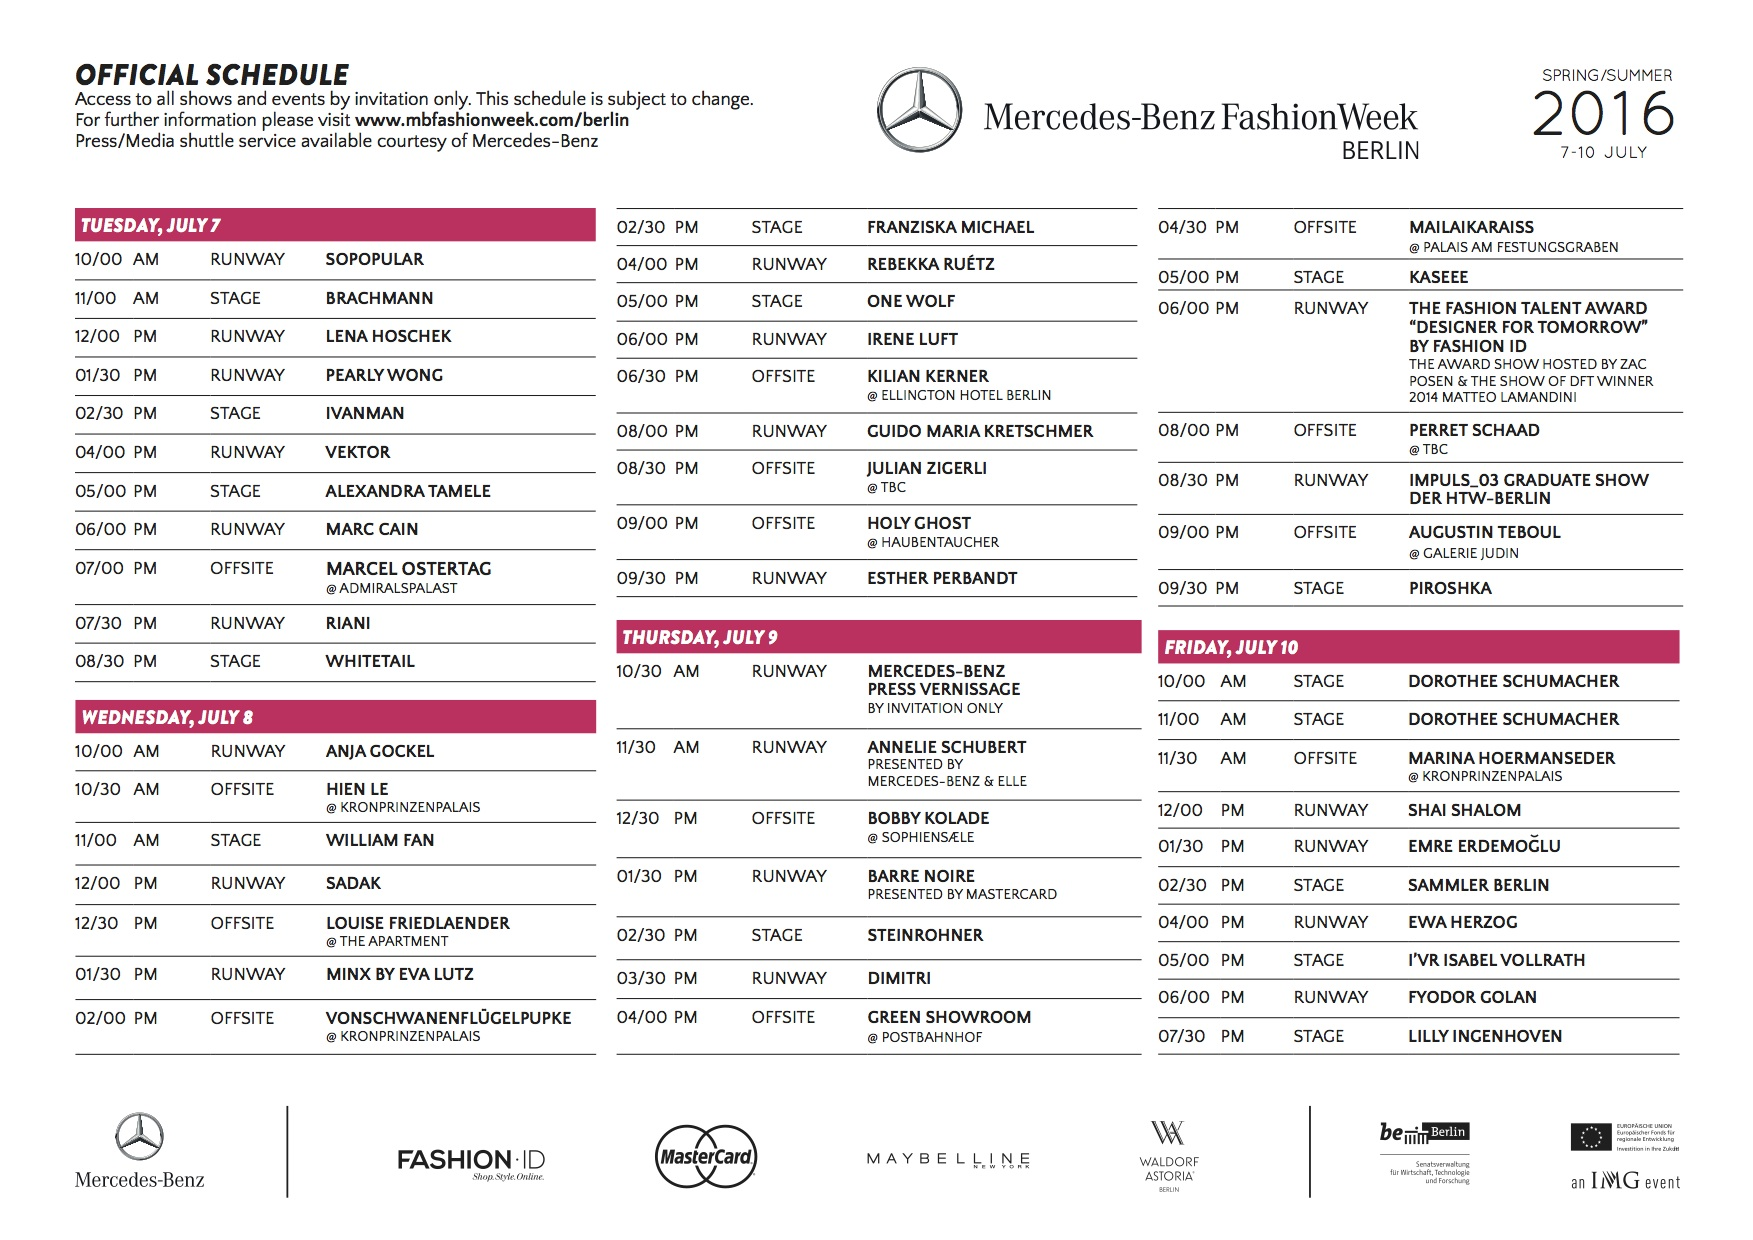 MBFWB_OFFICIAL SCHEDULE_SS2016